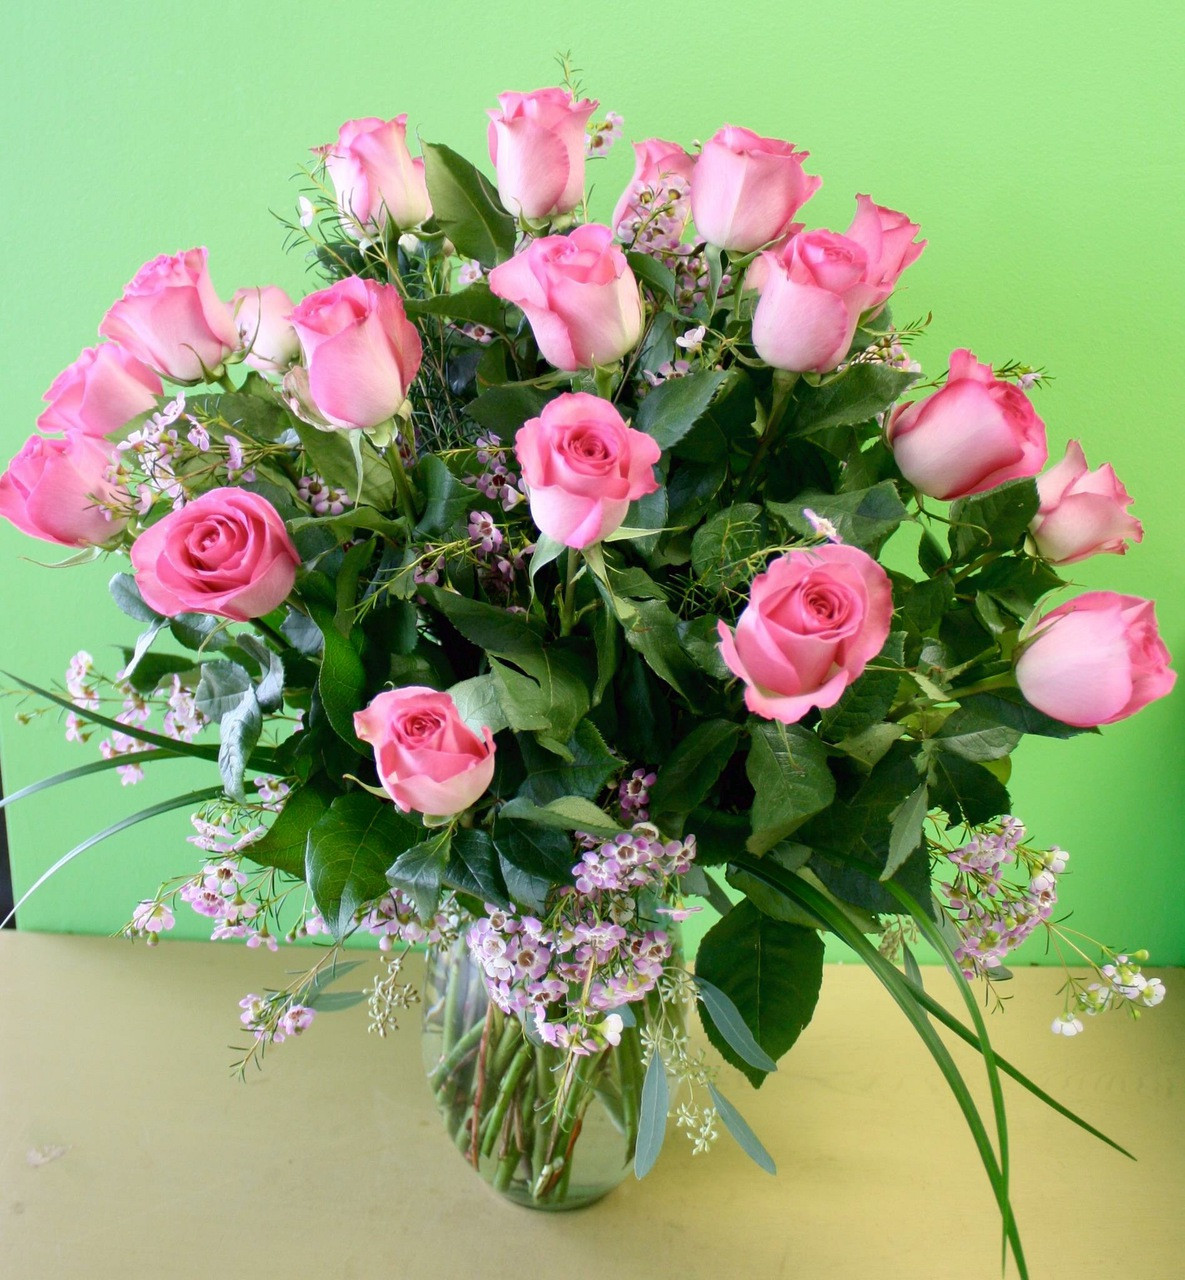 priceless pink roses by belvedere flowers